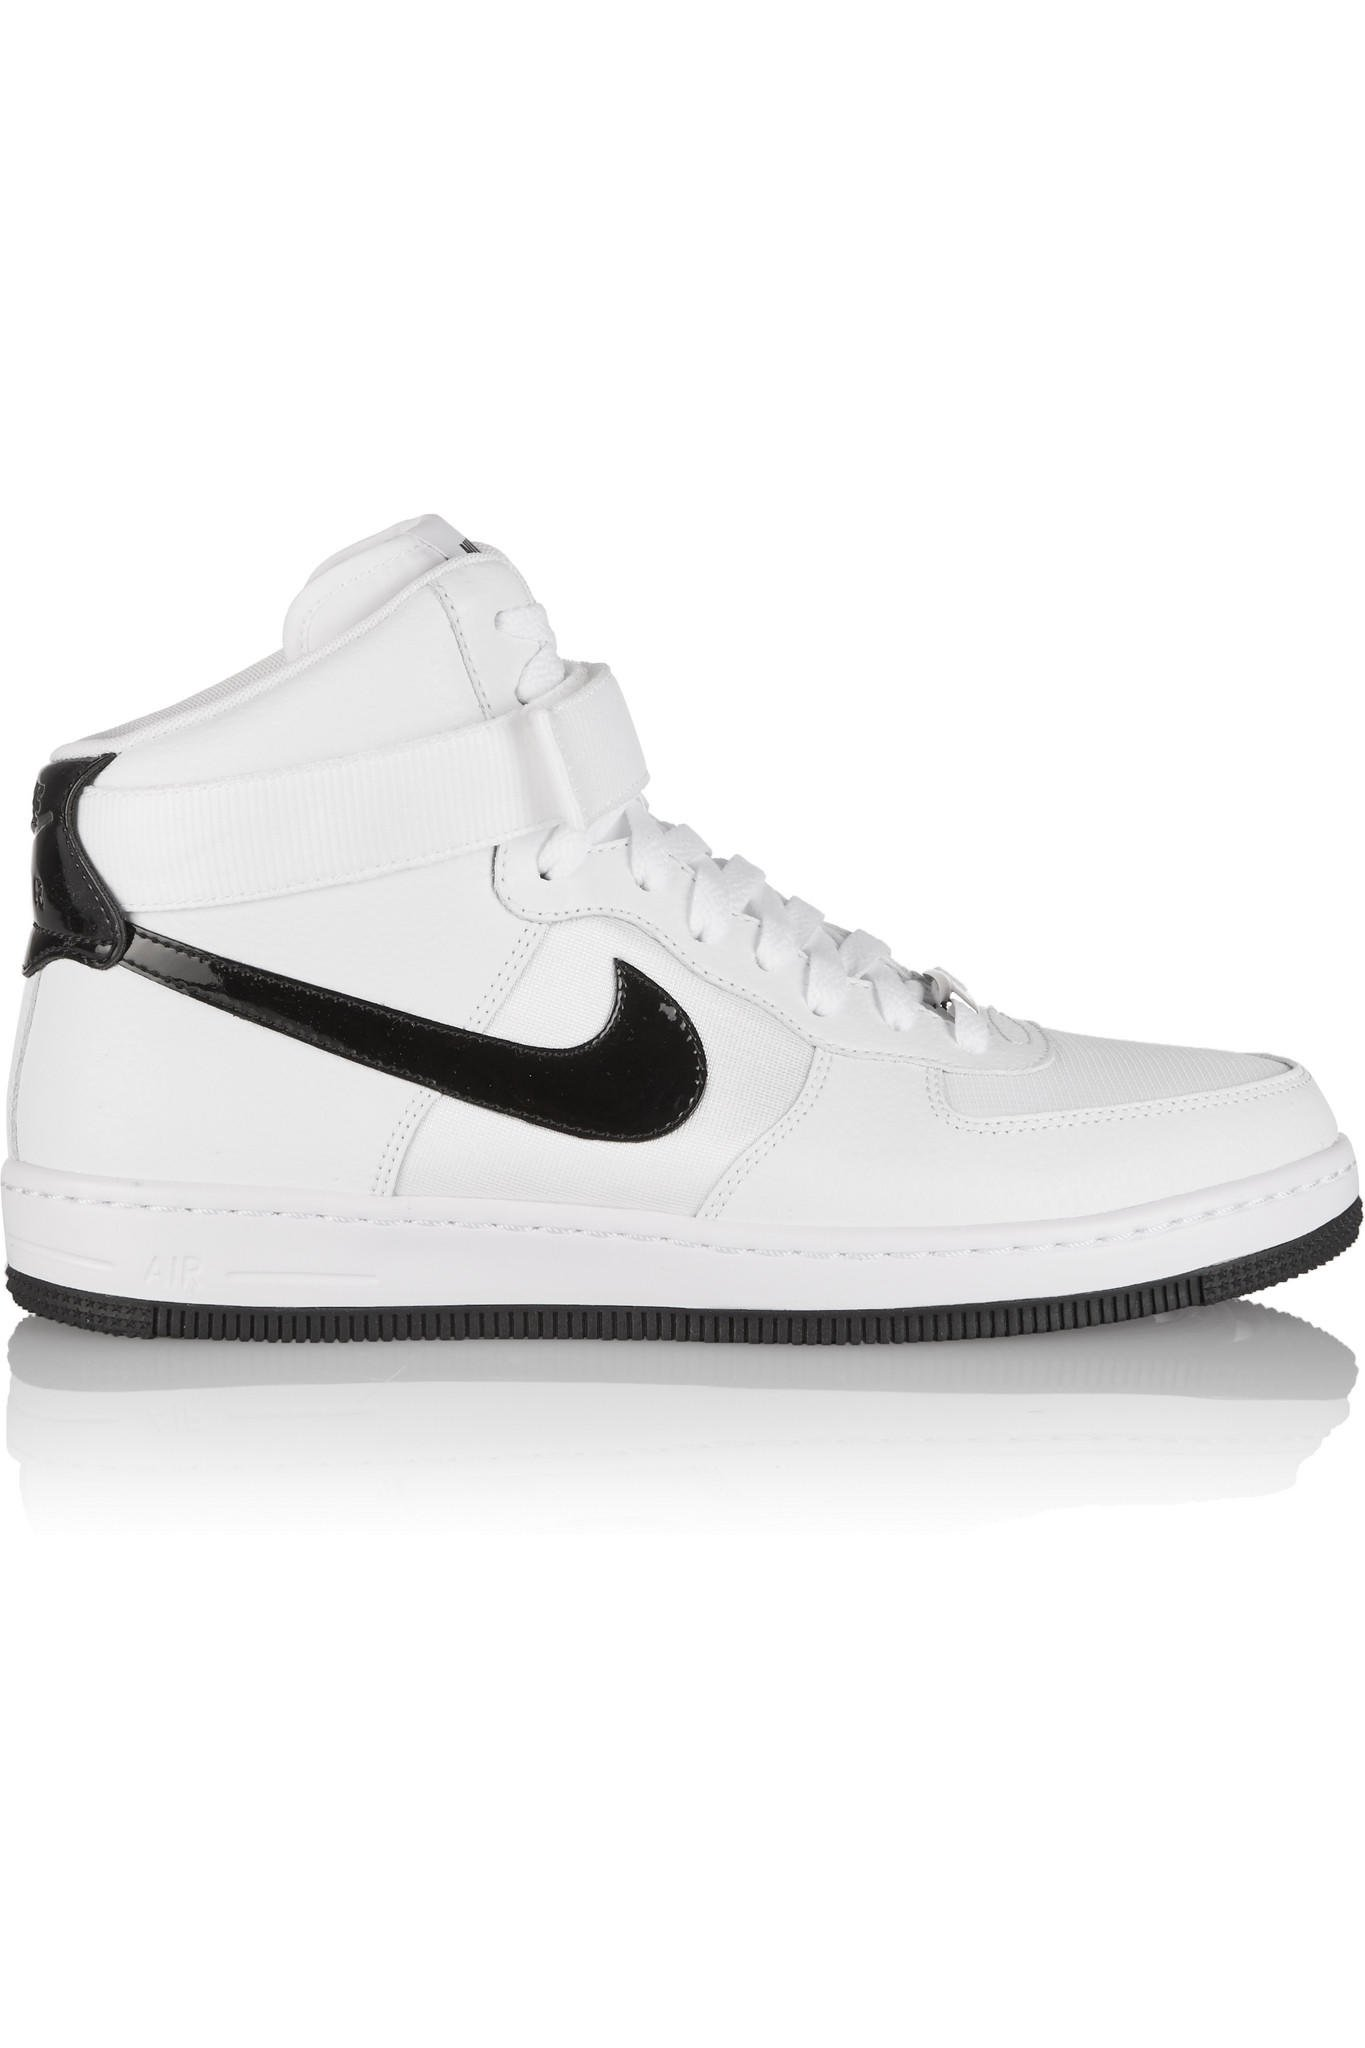 Nike - Air Force 1 Ultra Force leather from NET-A-PORTER 0be199dff